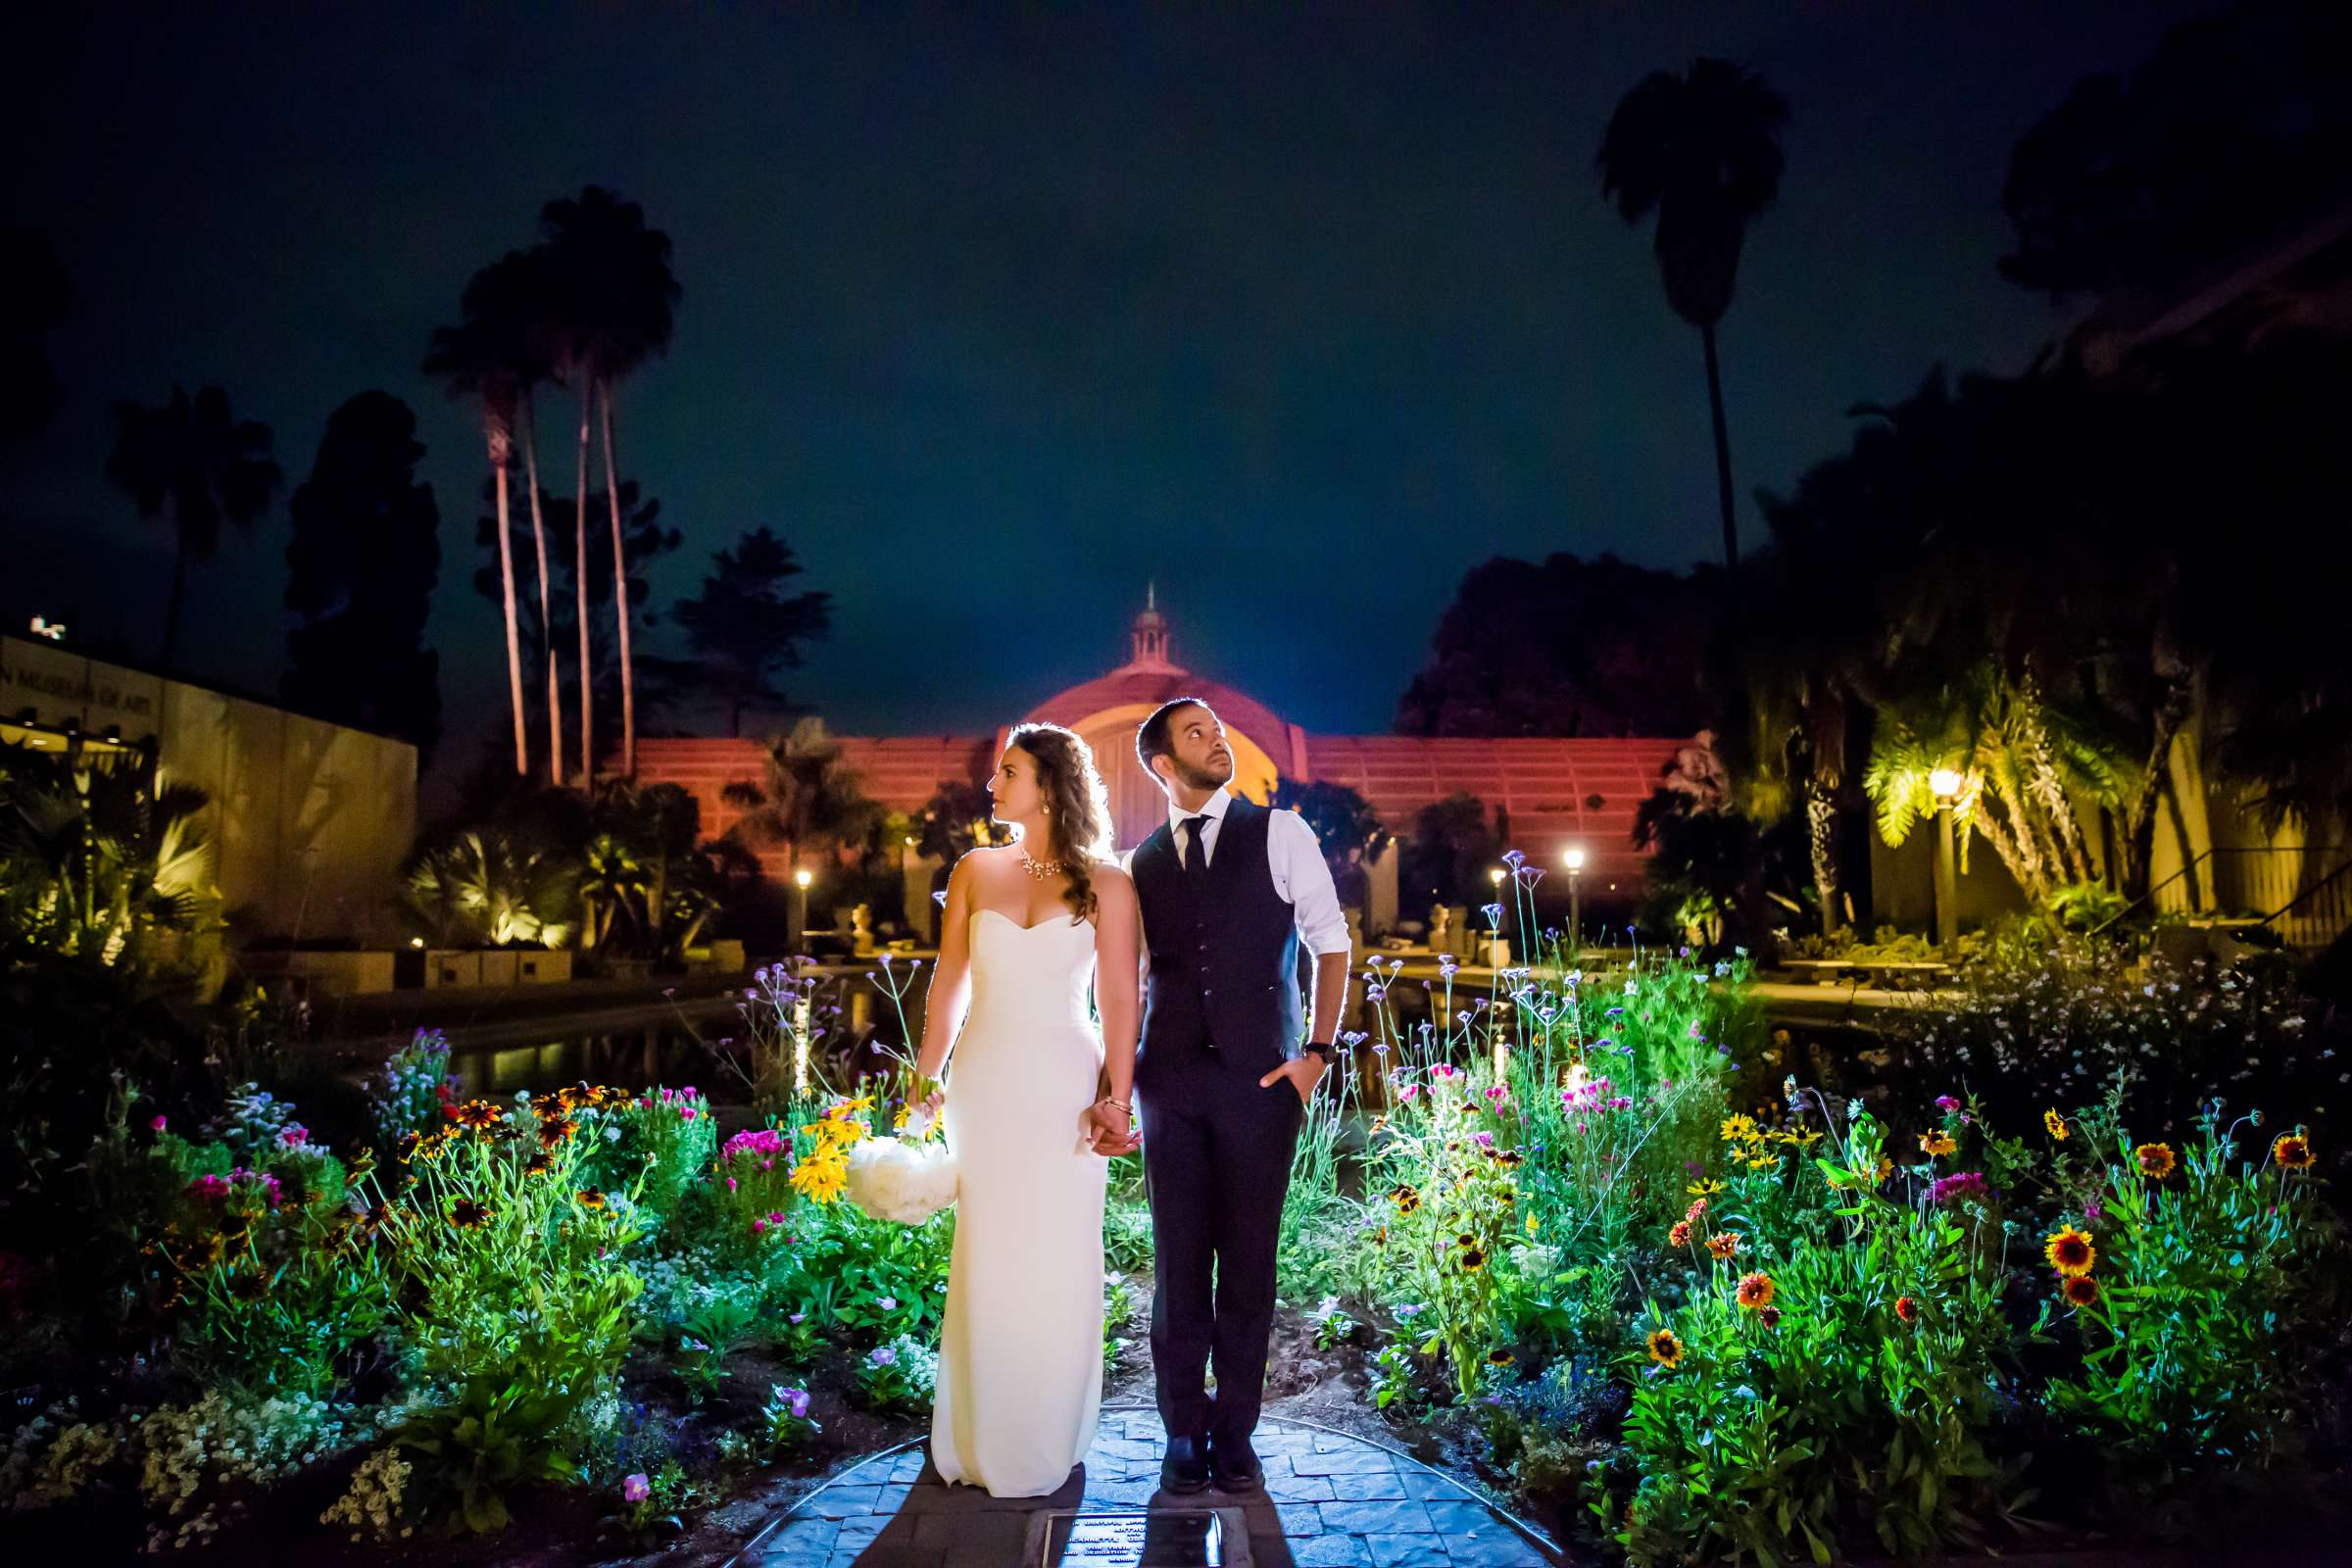 Bride and Groom, Stylized Portrait at San Diego Museum of Art Wedding coordinated by First Comes Love Weddings & Events, Ruthie and Larry Wedding Photo #236745 by True Photography